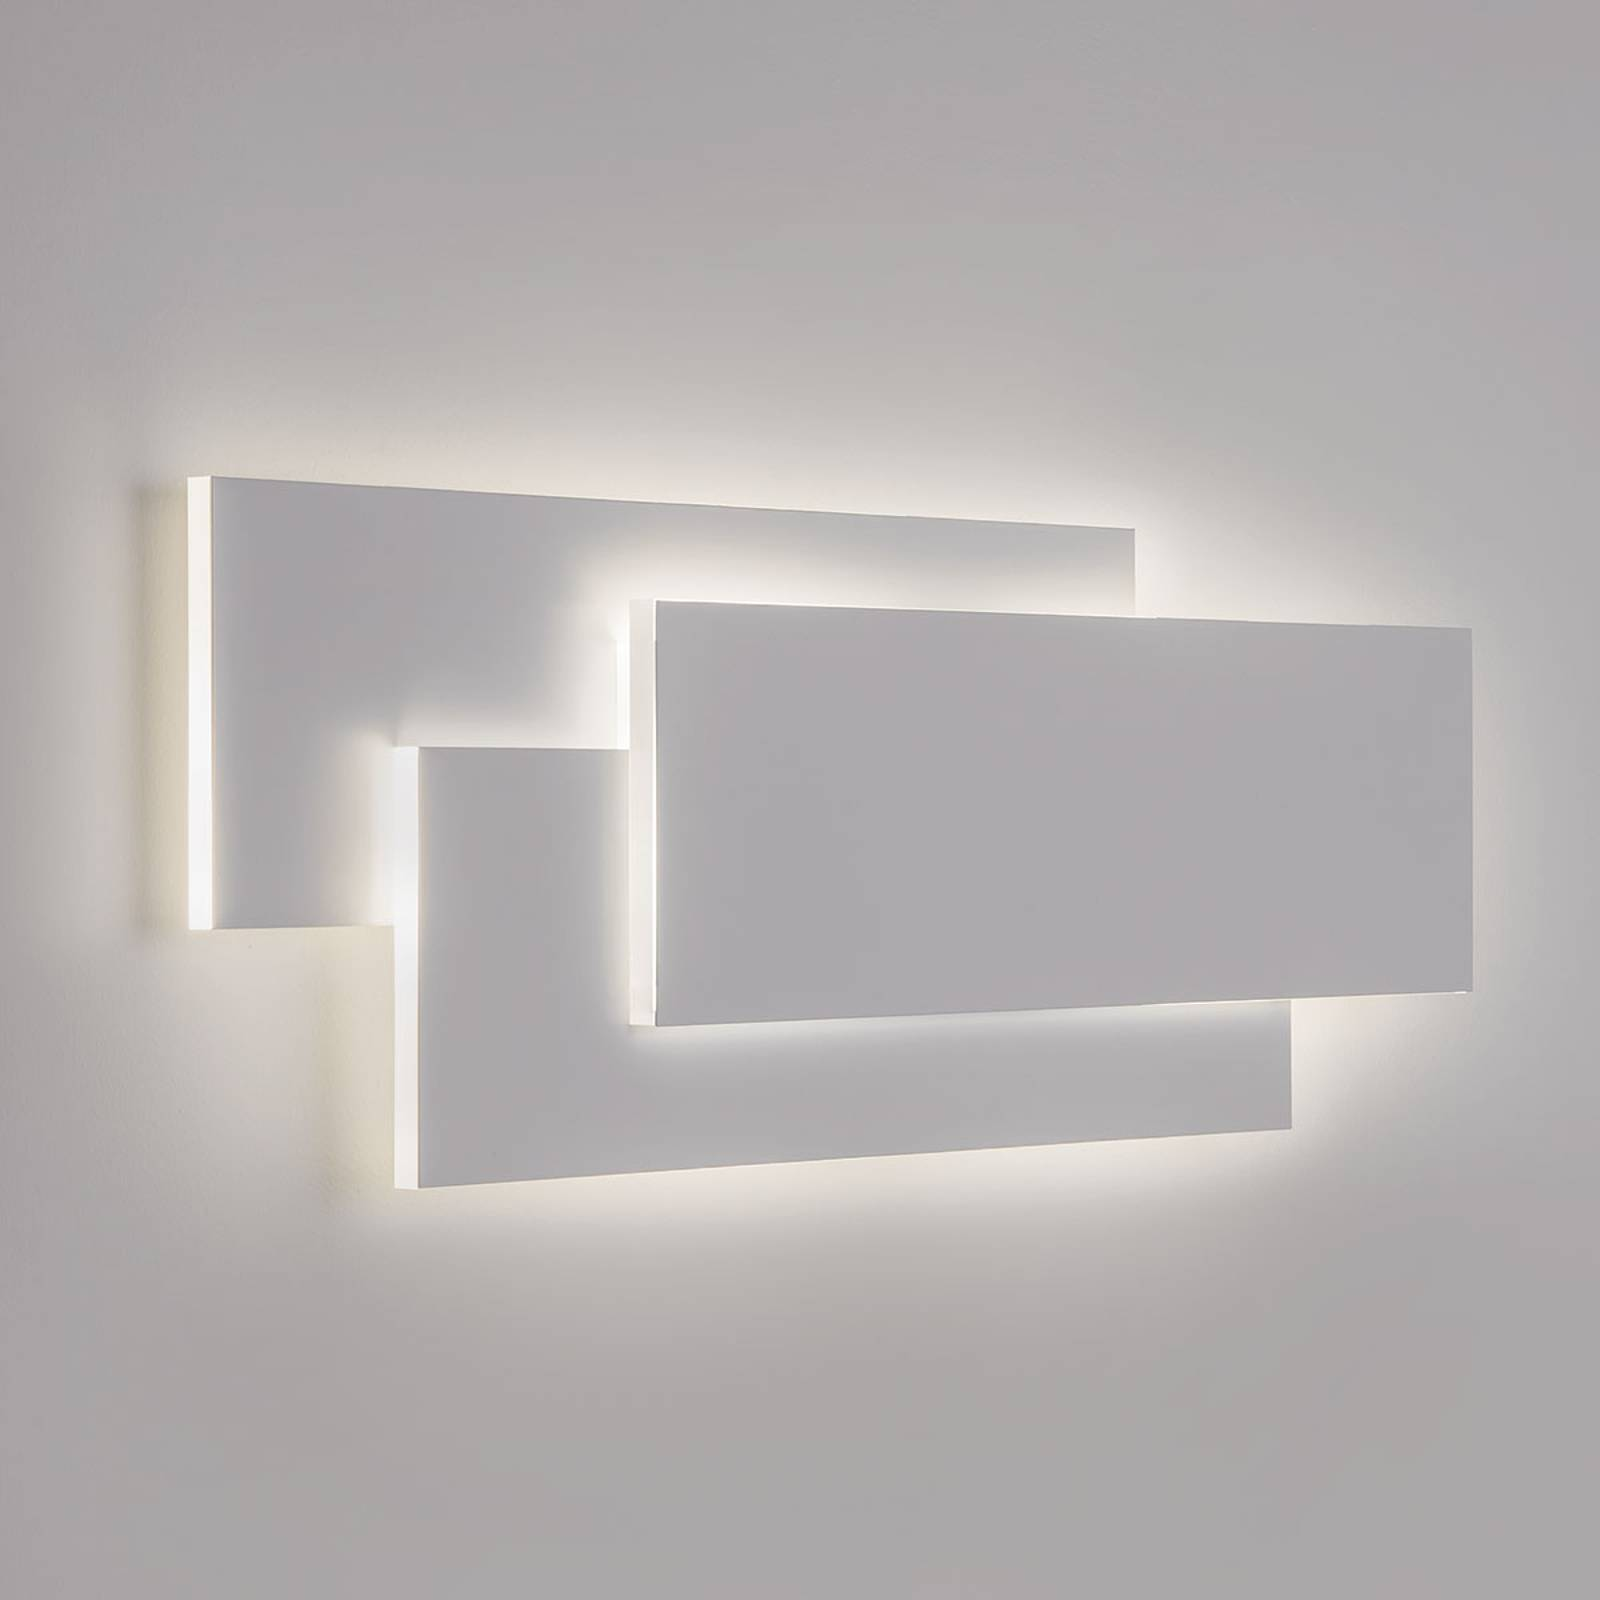 State-of-the-art LED wall light Edge in white from ASTRO